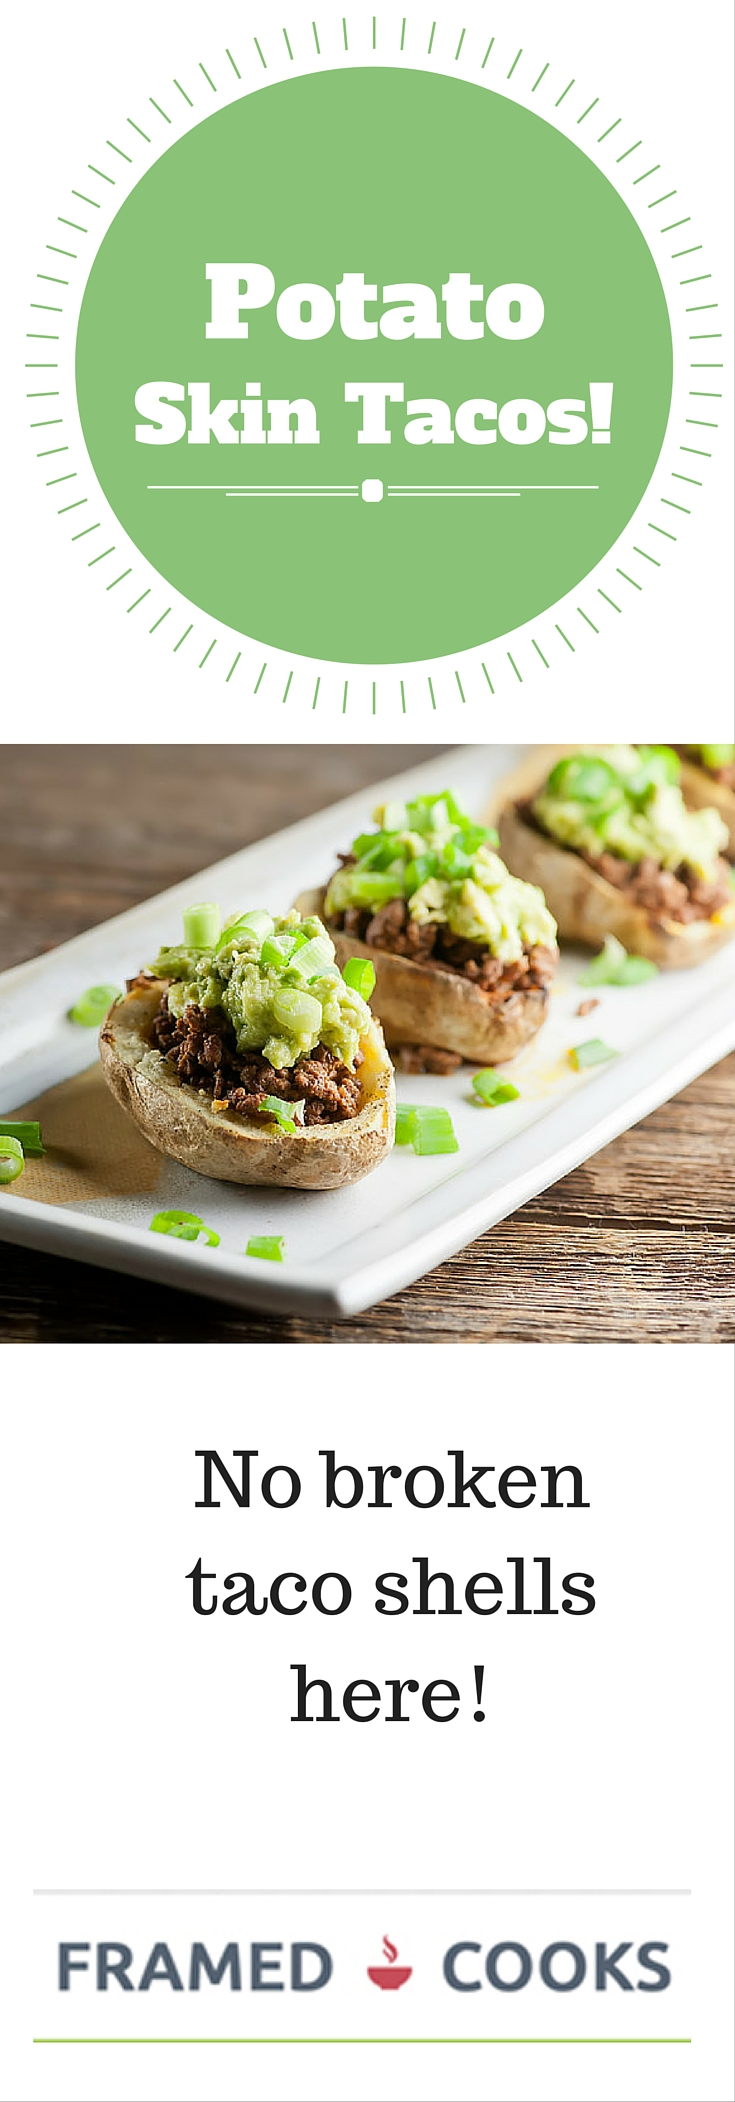 This recipe for potato skin tacos leaves the taco shells behind for easy and delicious eating!